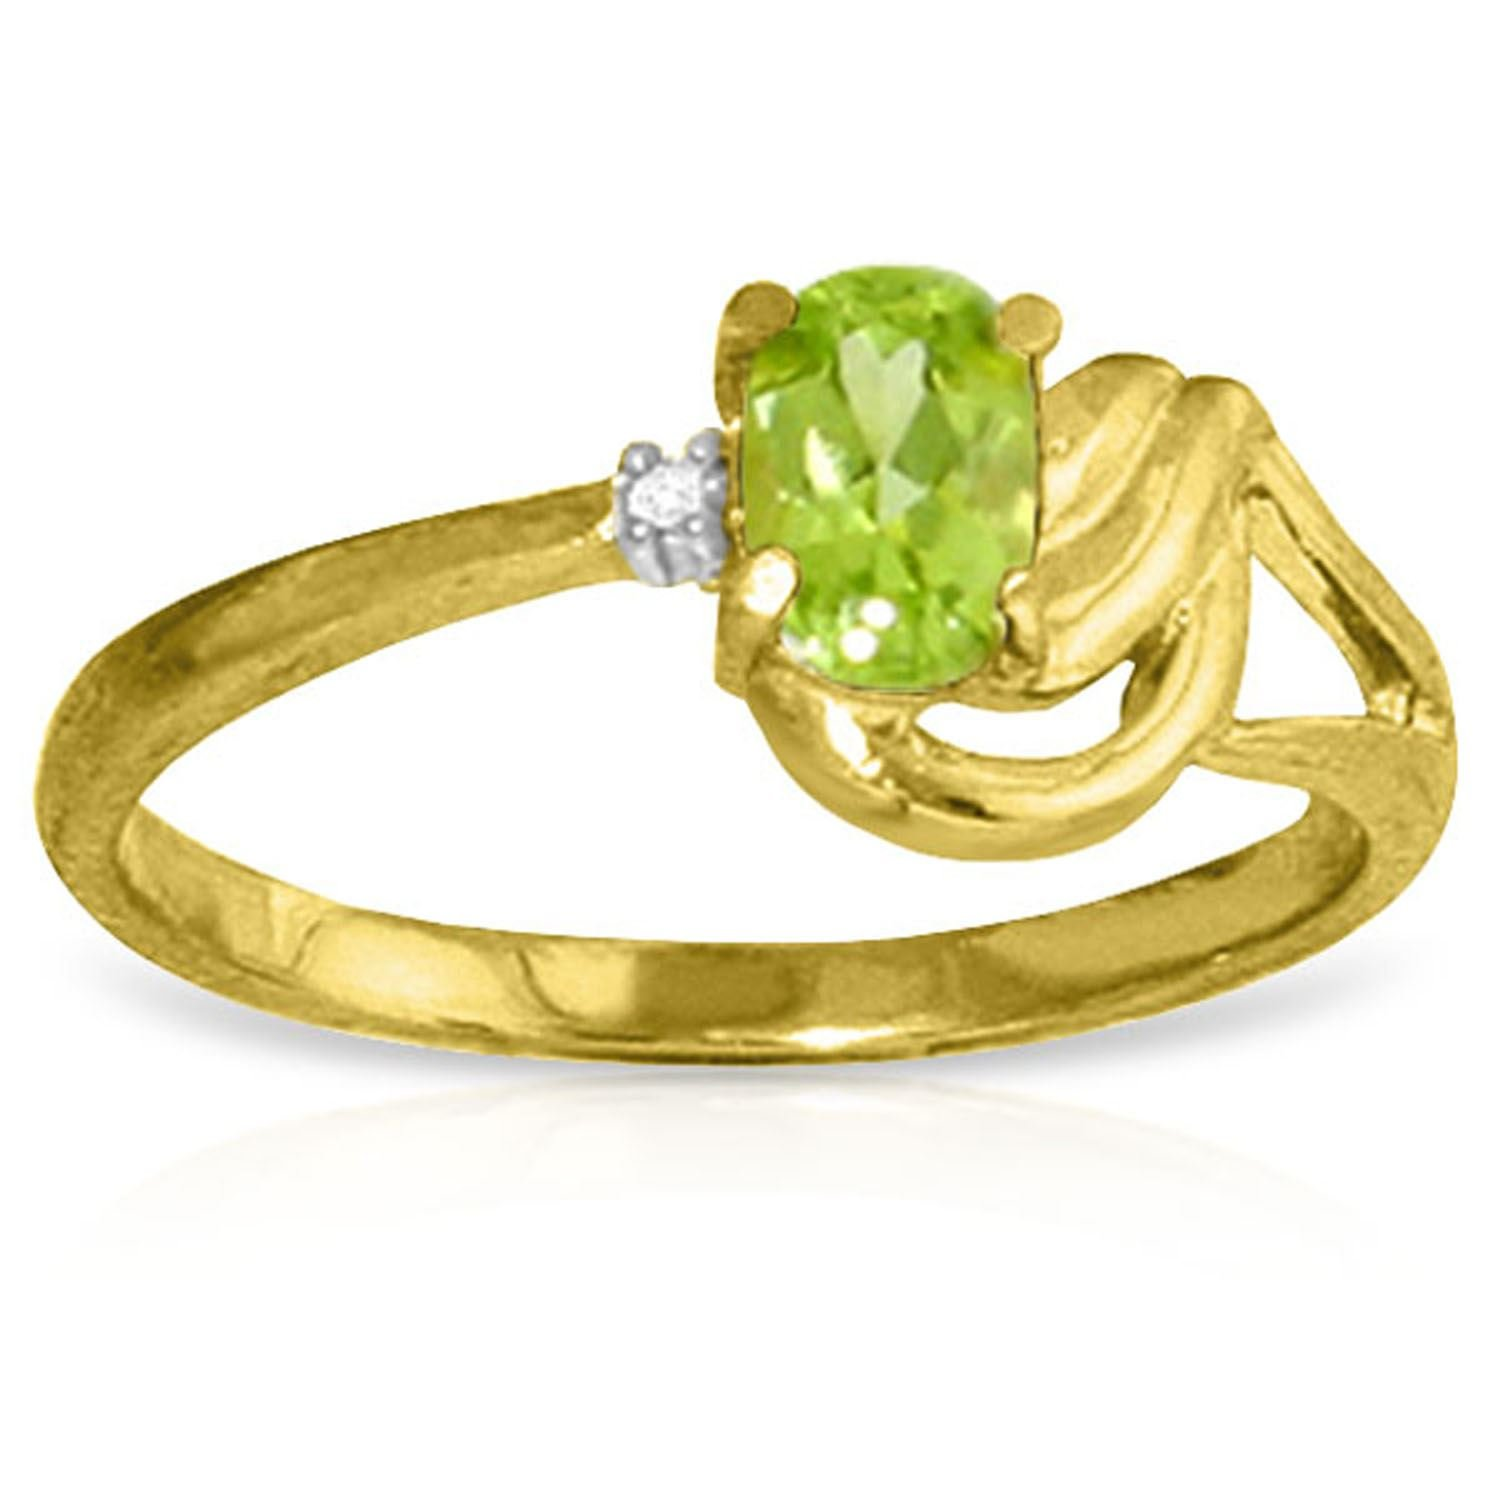 ALARRI 0.46 CTW 14K Solid Gold Here Comes Love Peridot Diamond Ring With Ring Size 8.5